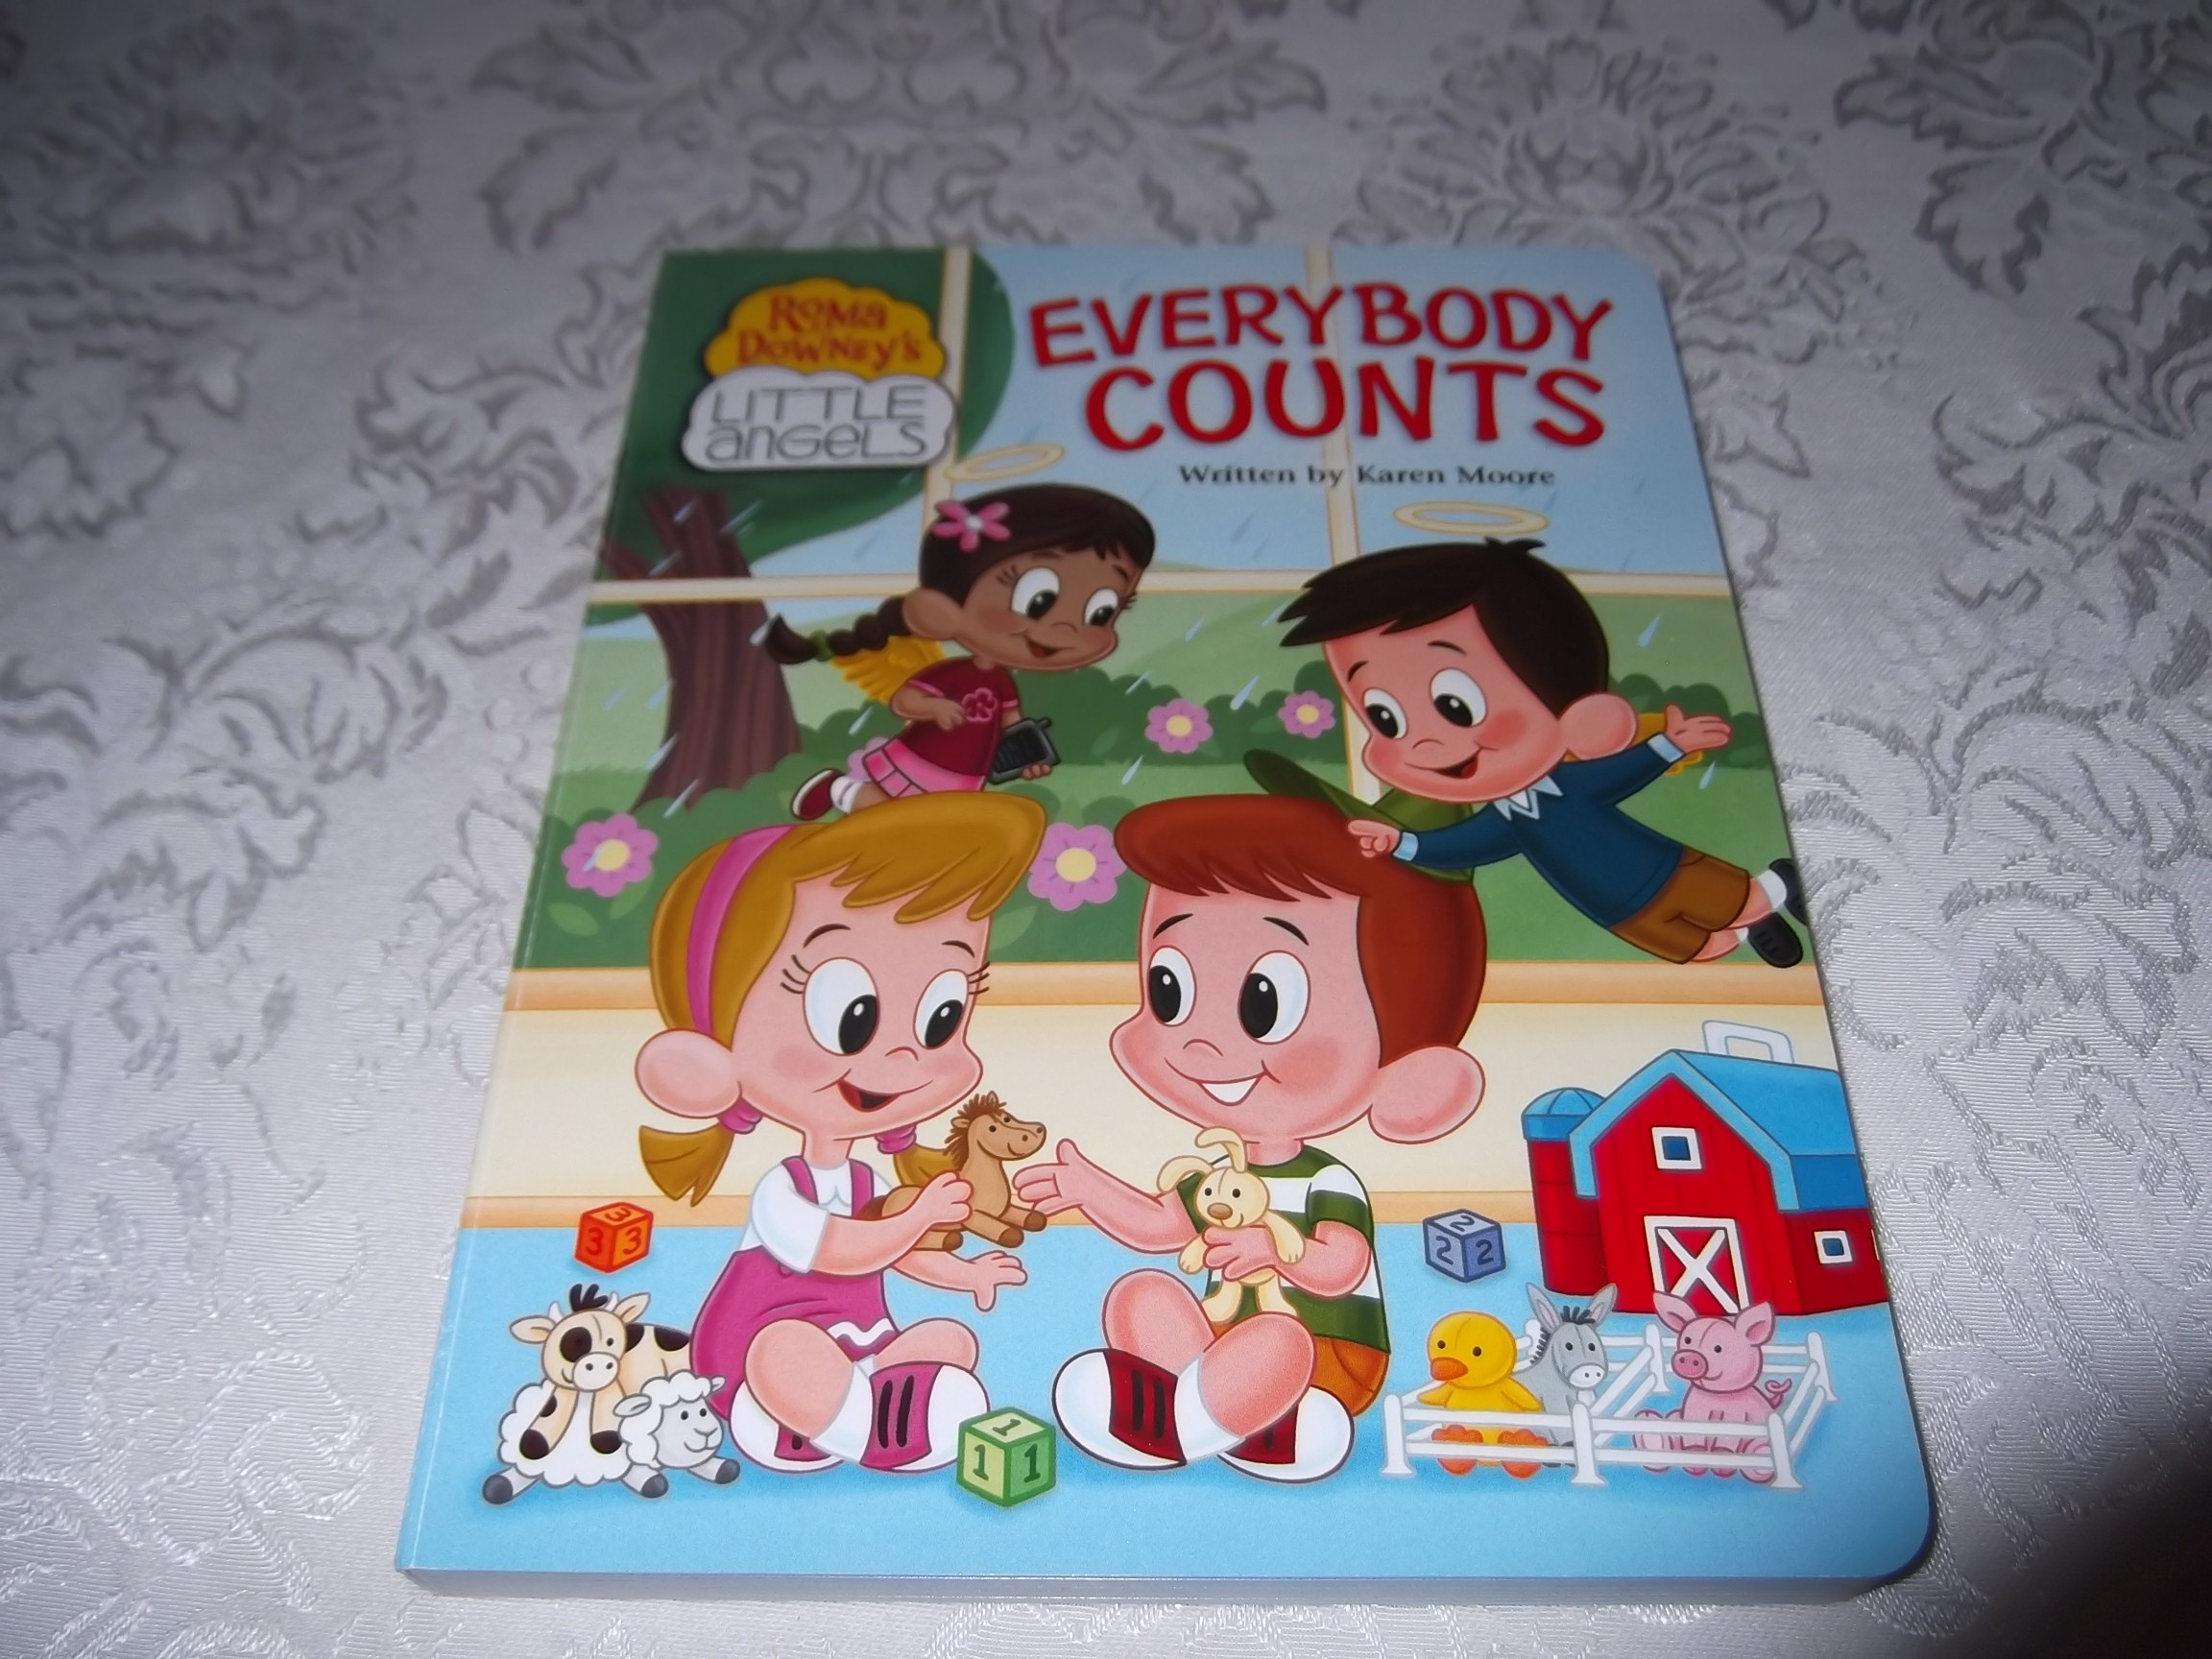 Everybody Counts Karen Moore Roma Downey's Little Angels Brand New Board Book